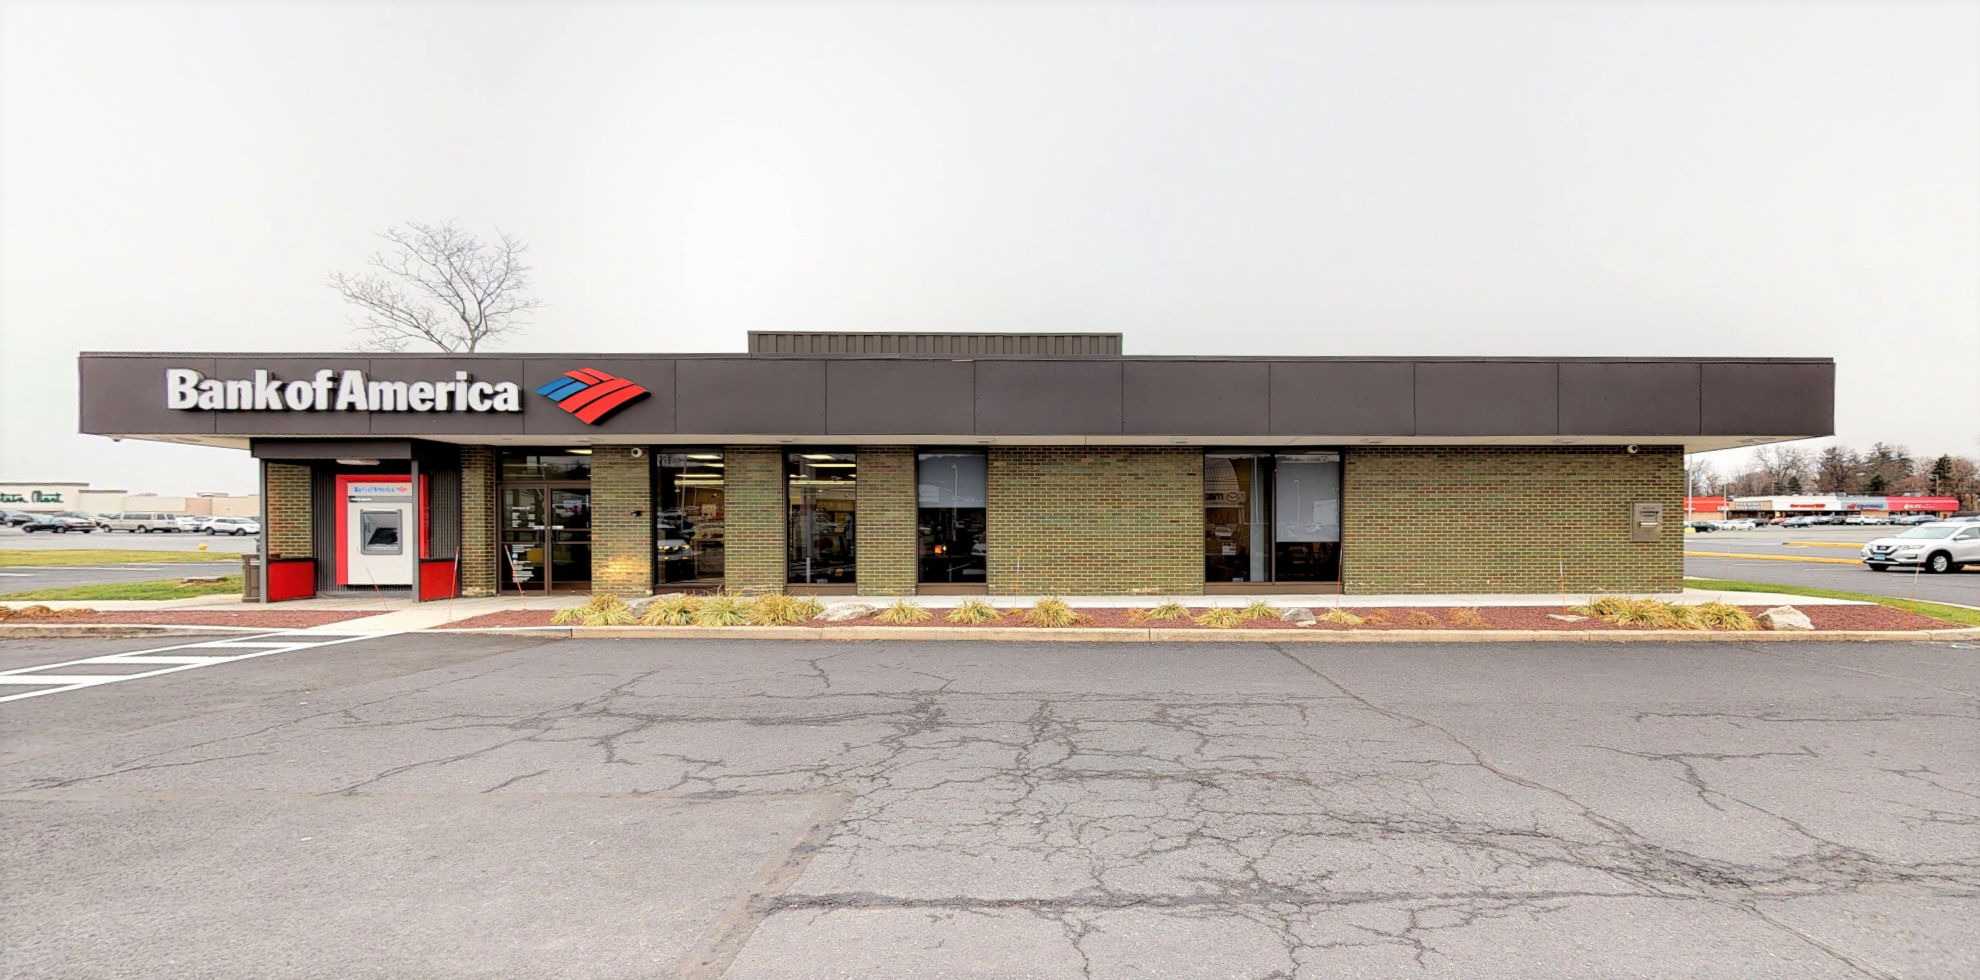 Bank of America financial center with drive-thru ATM and teller | 3300 Lehigh St, Allentown, PA 18103